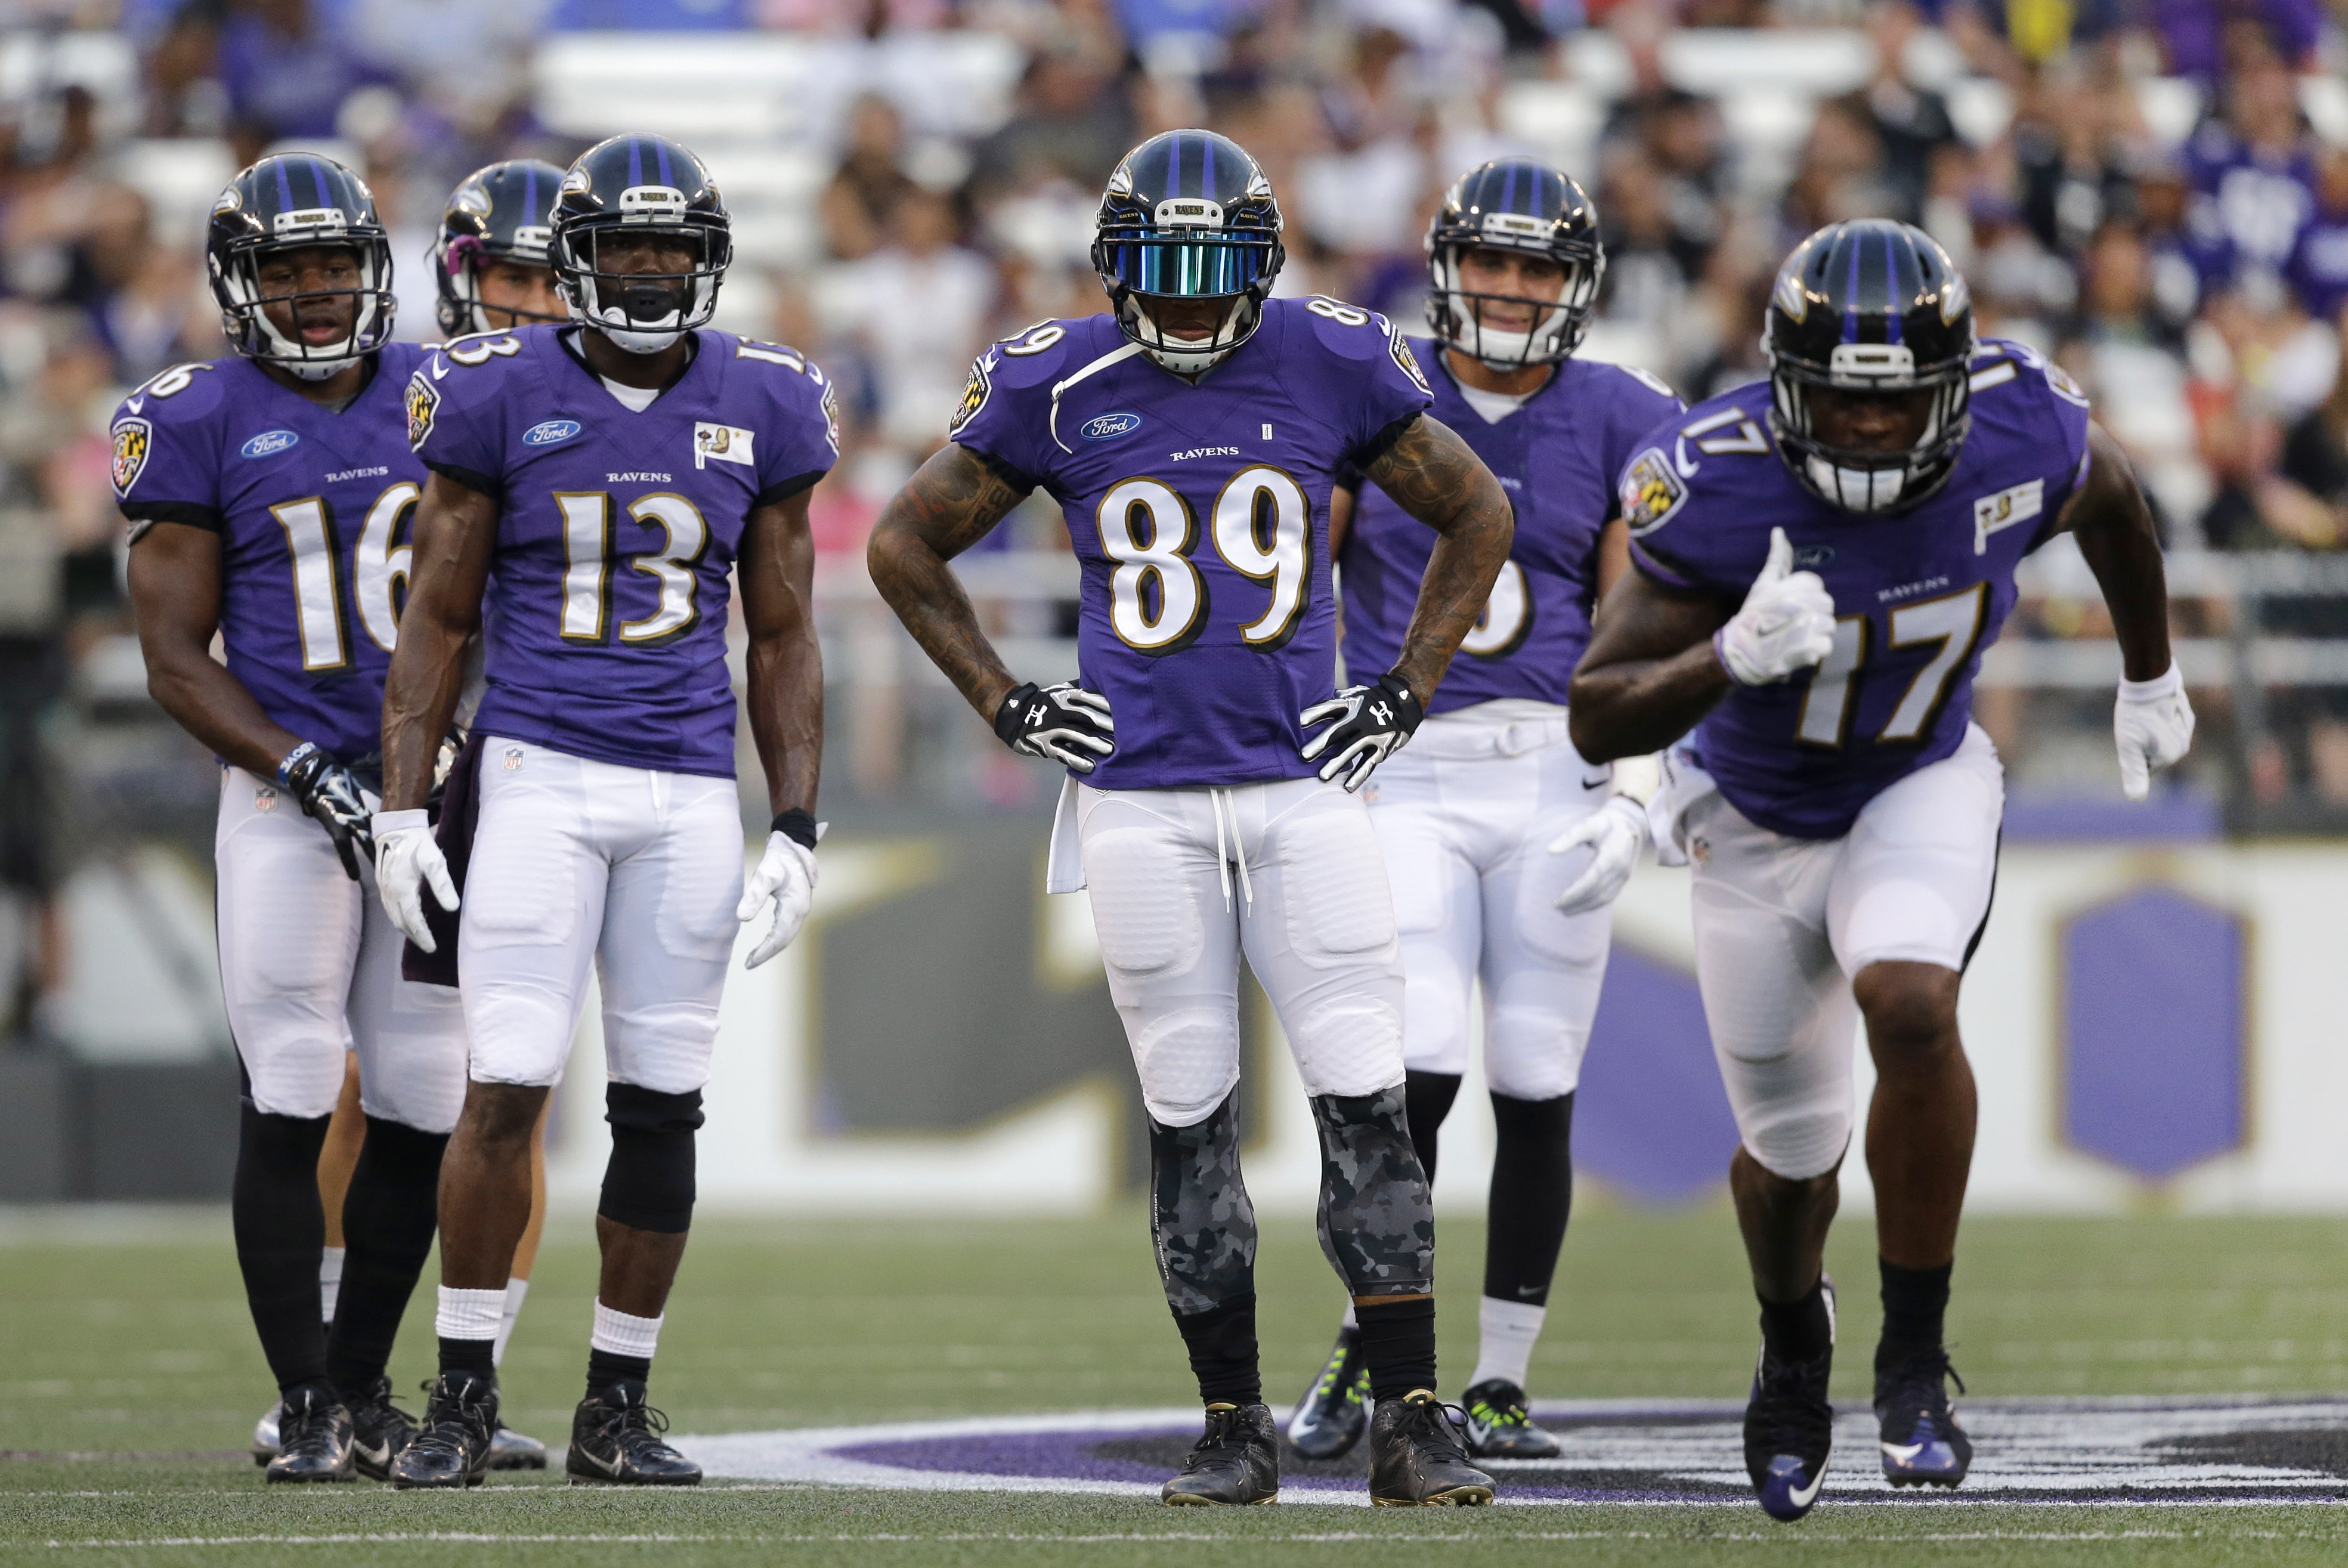 Baltimore Ravens wide receiver Steve Smith, center, stands alongside teammates as fellow wide receiver Jeremy Butler (17) runs a rout during NFL football training camp, Monday, Aug. 3, 2015, in Baltimore. (AP Photo/Patrick Semansky)